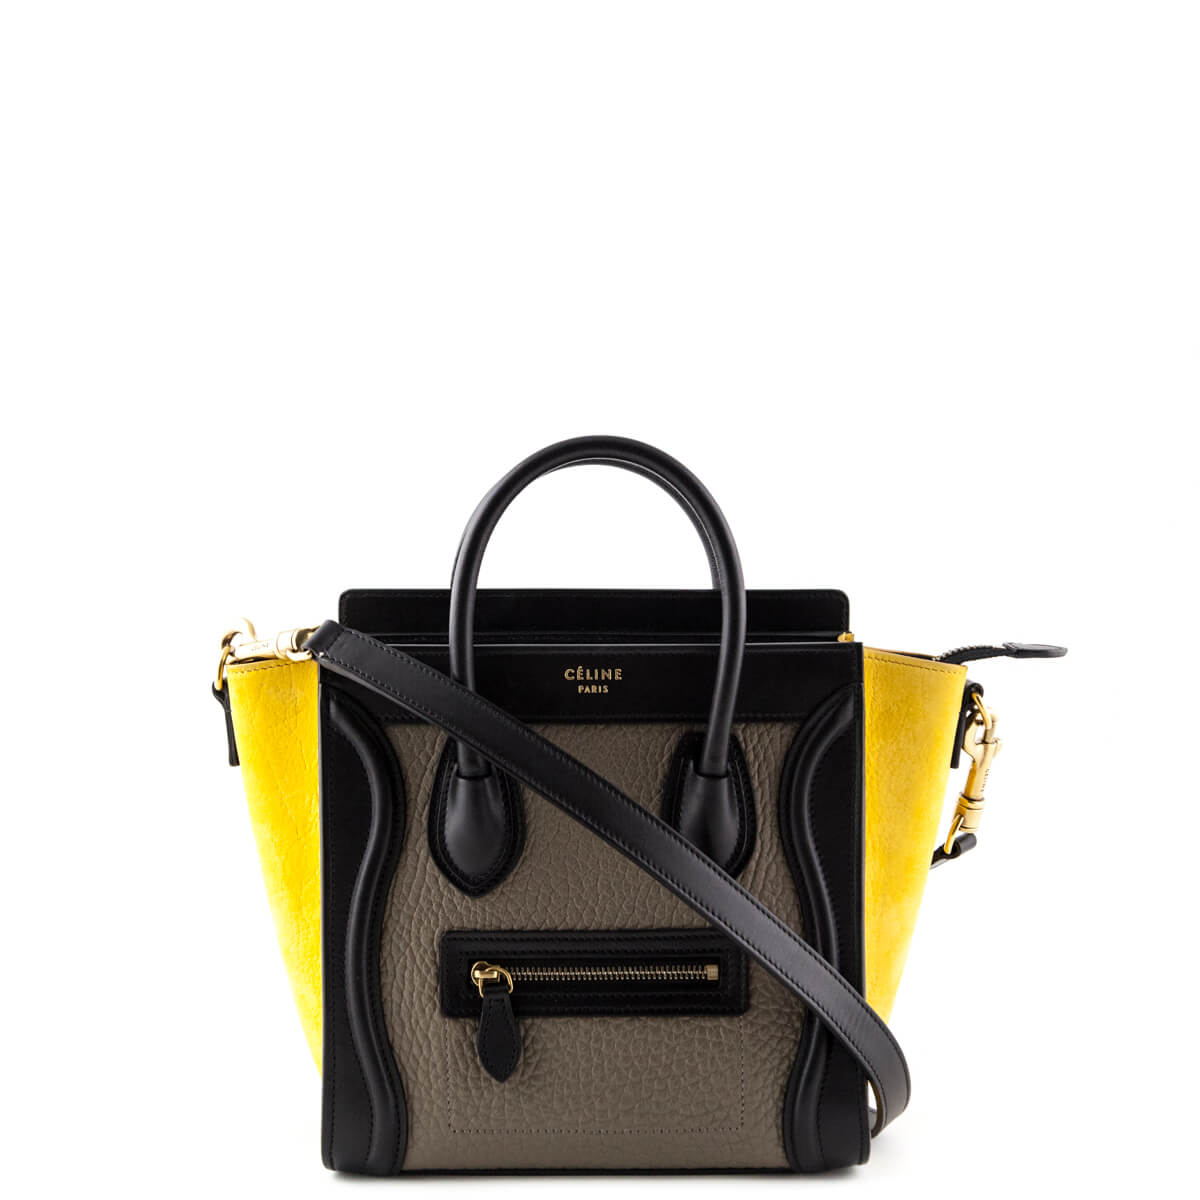 8ddde26382a3 Celine Tricolor Nano Luggage - LOVE that BAG - Preowned Authentic Designer  Handbags ...